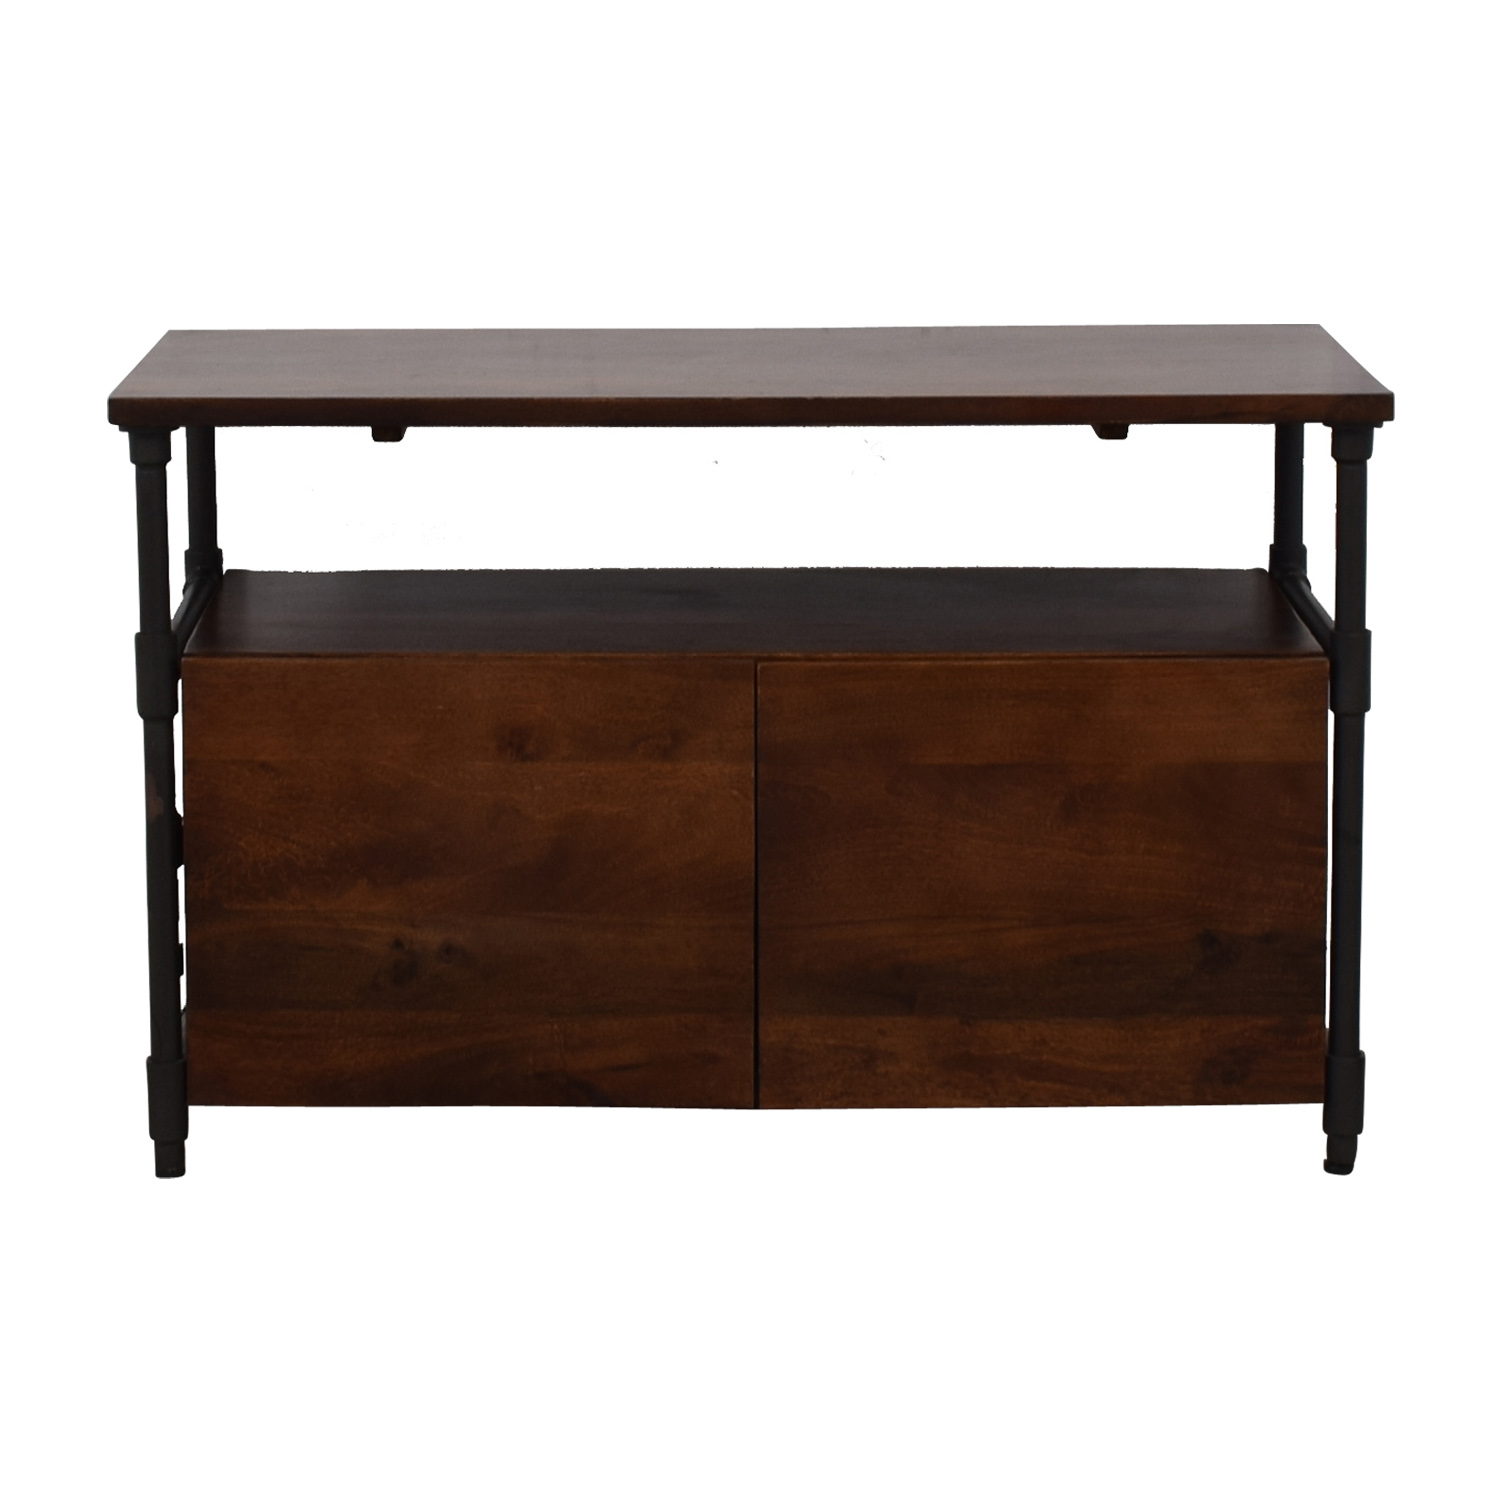 West Elm West Elm Pipe Media Console Short Cafe nj